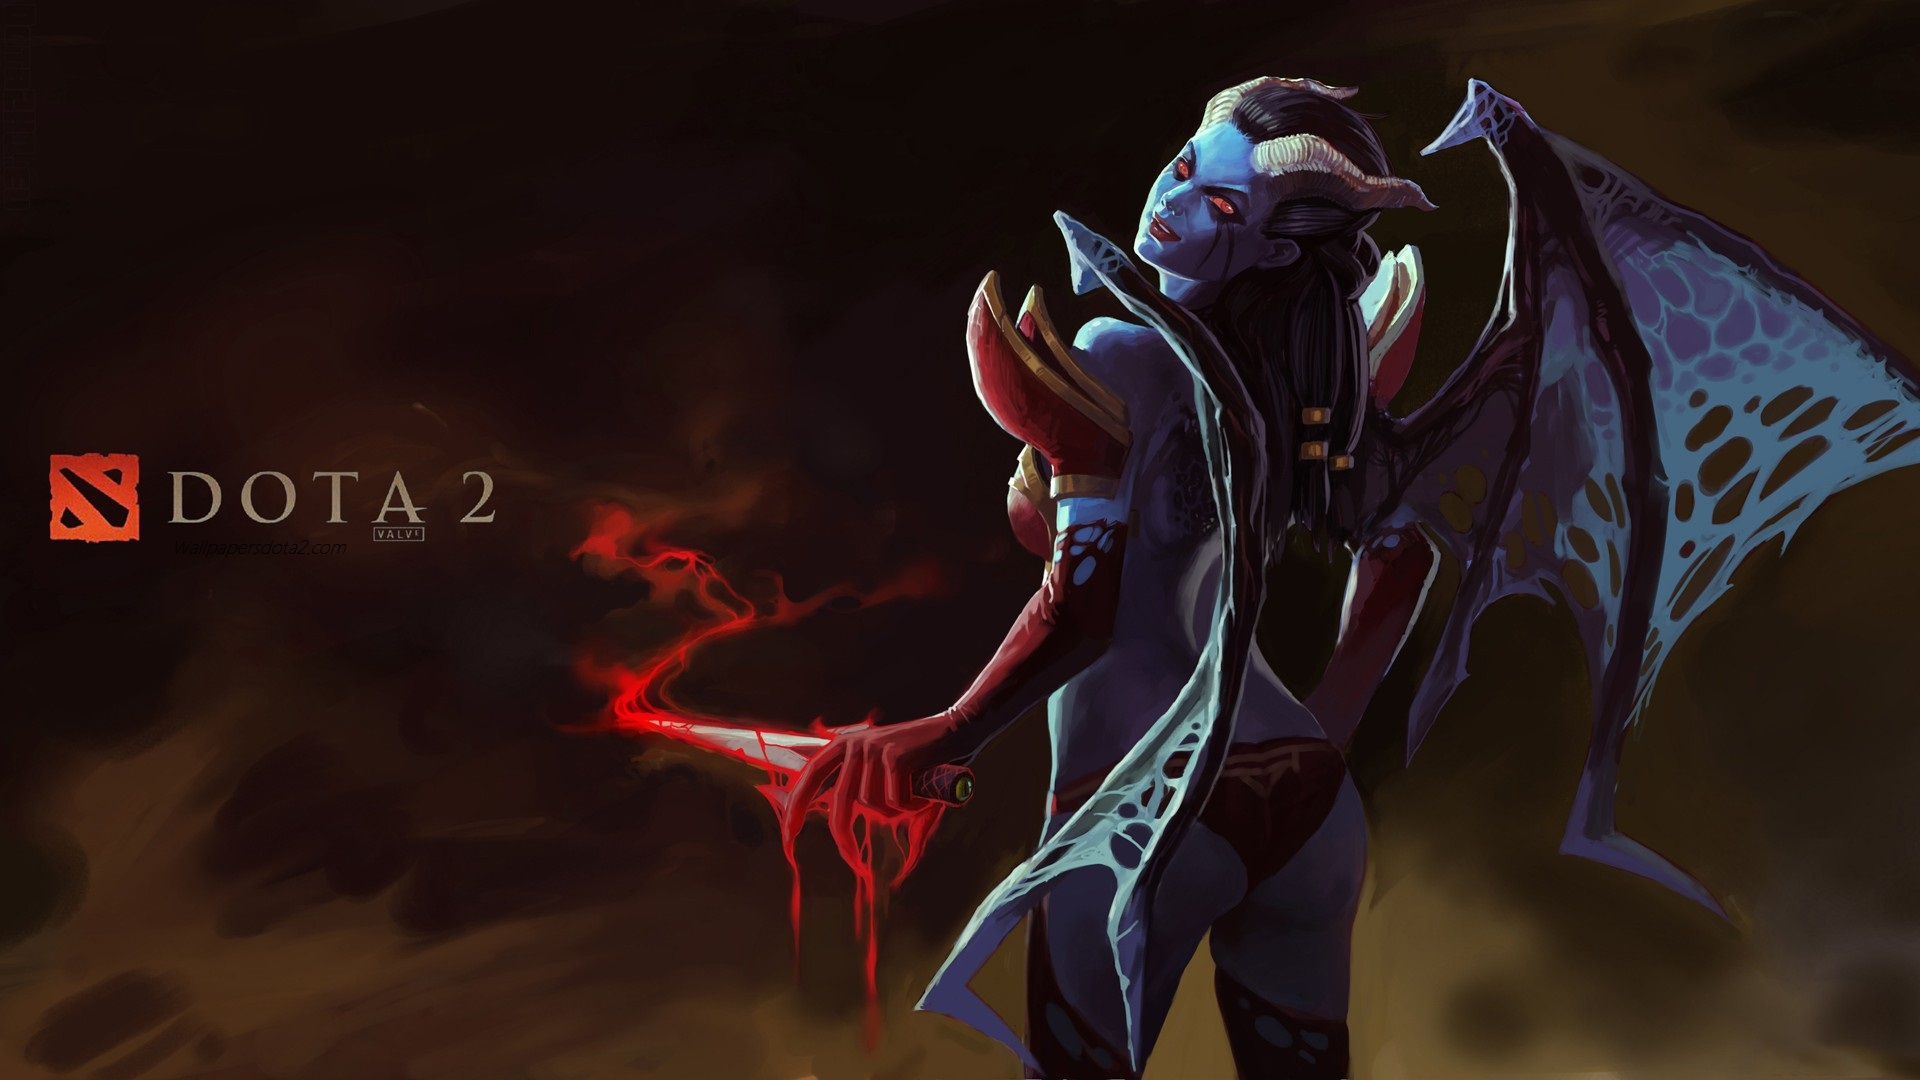 Queen of Pain computer wallpaper Dota 2